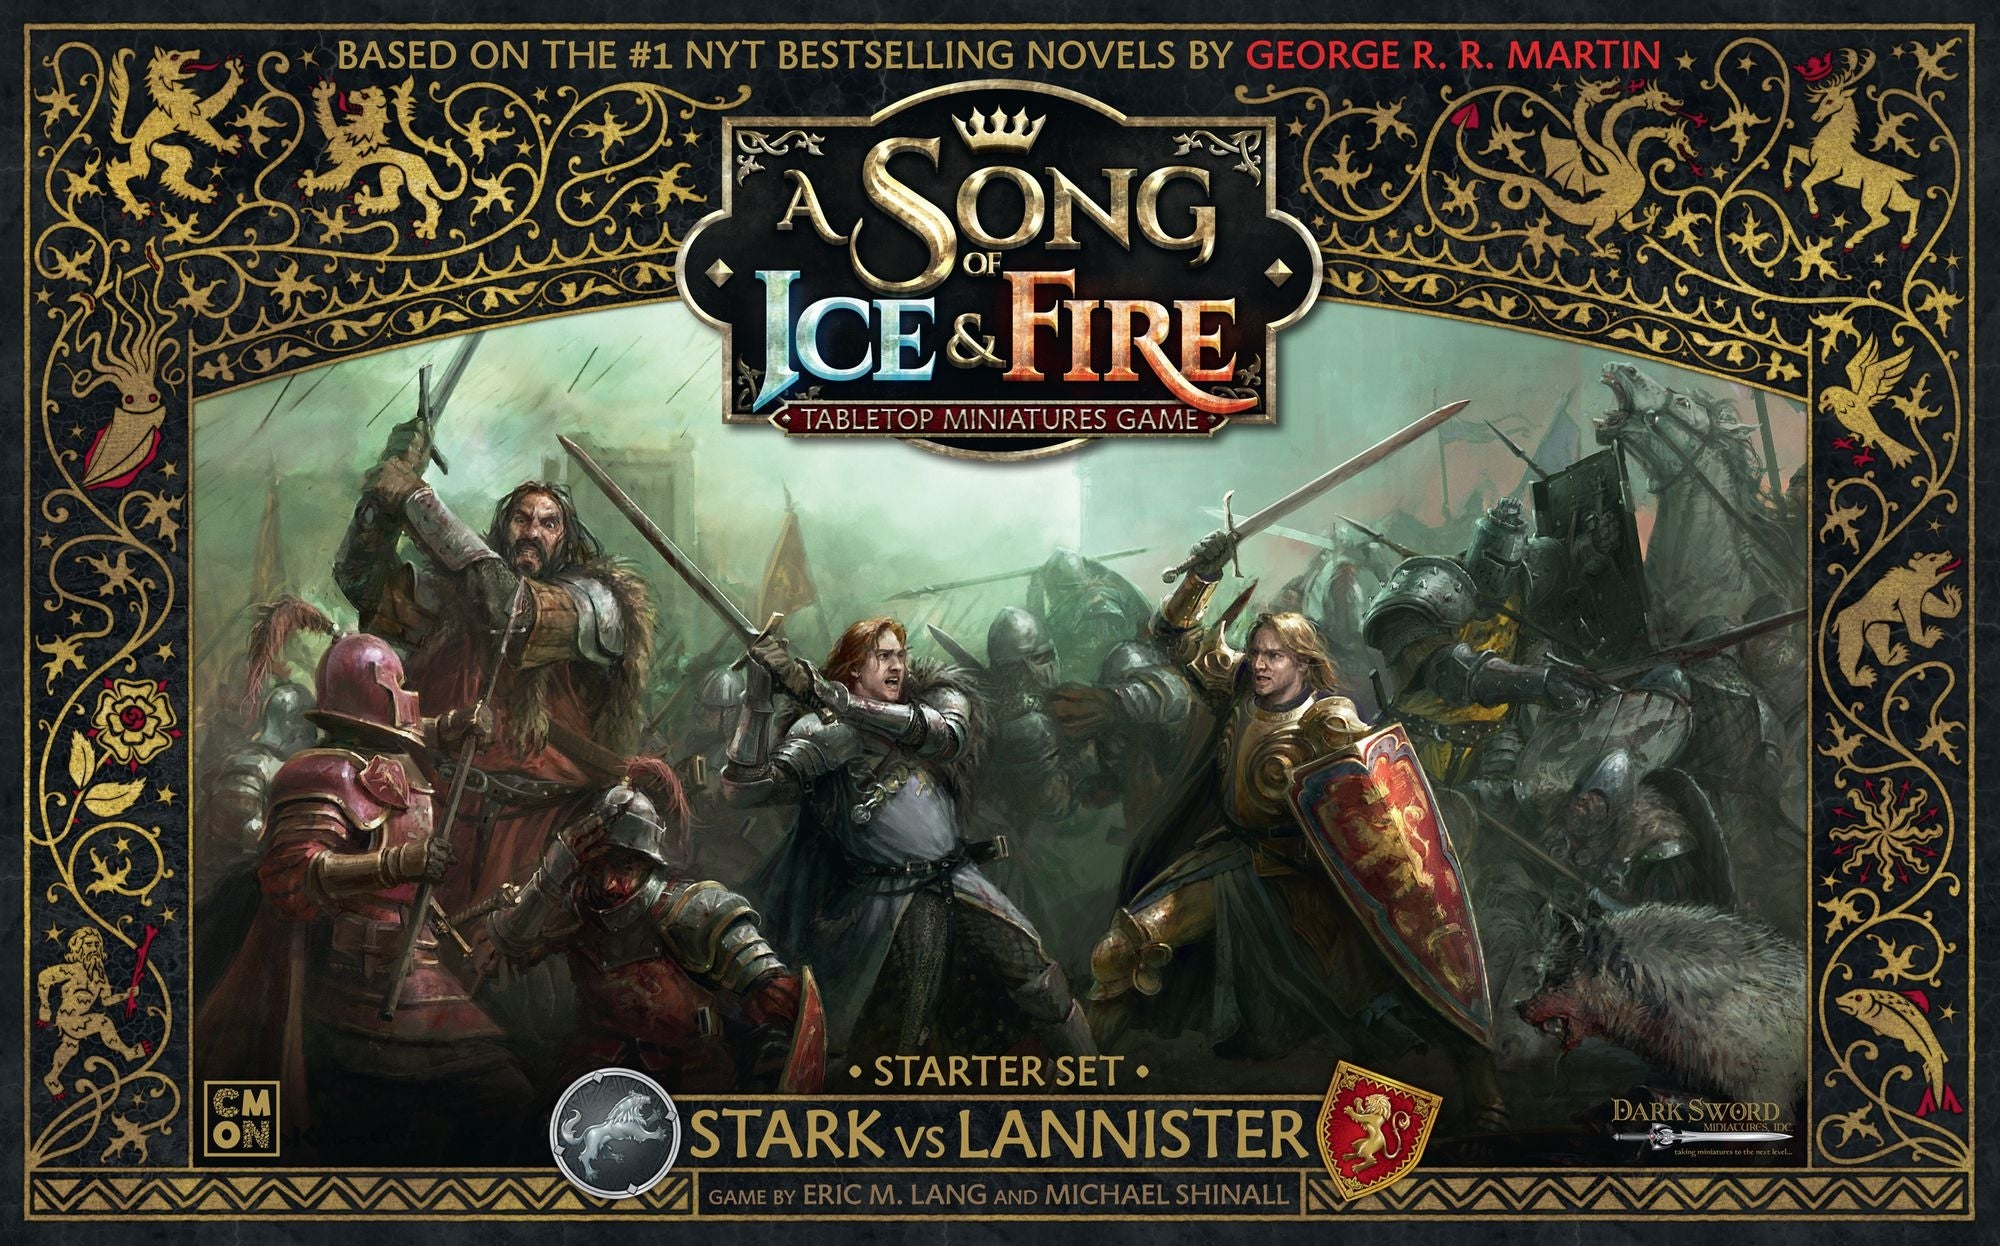 A Song of Ice and Fire Tabletop Miniature Game